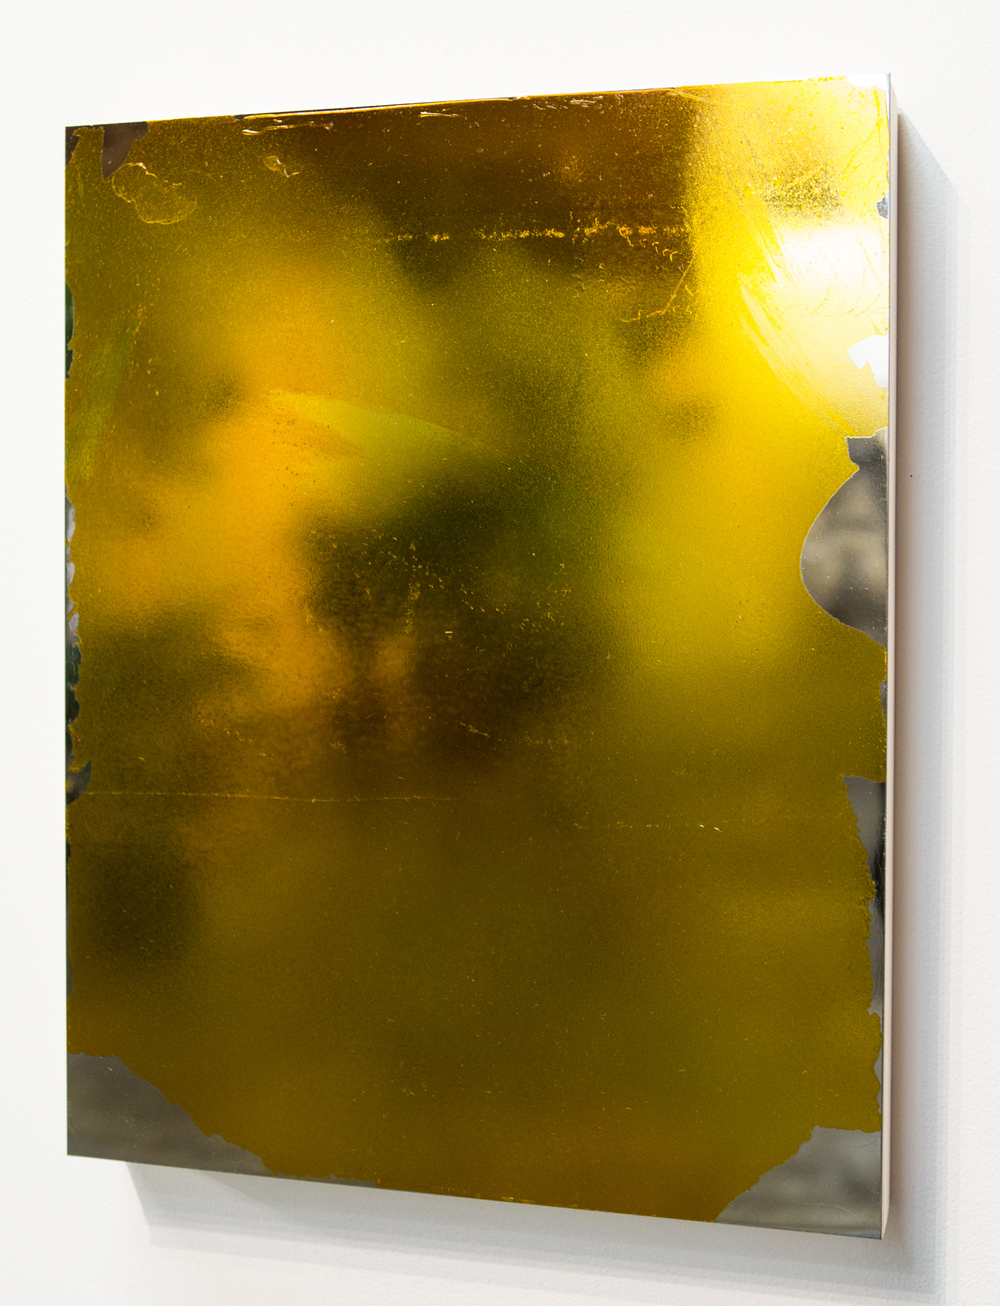 MLSL_20_Bunny, 2015  Gold tint on stainless steel  18 x 14 in (45.72 x 35.56 cm)